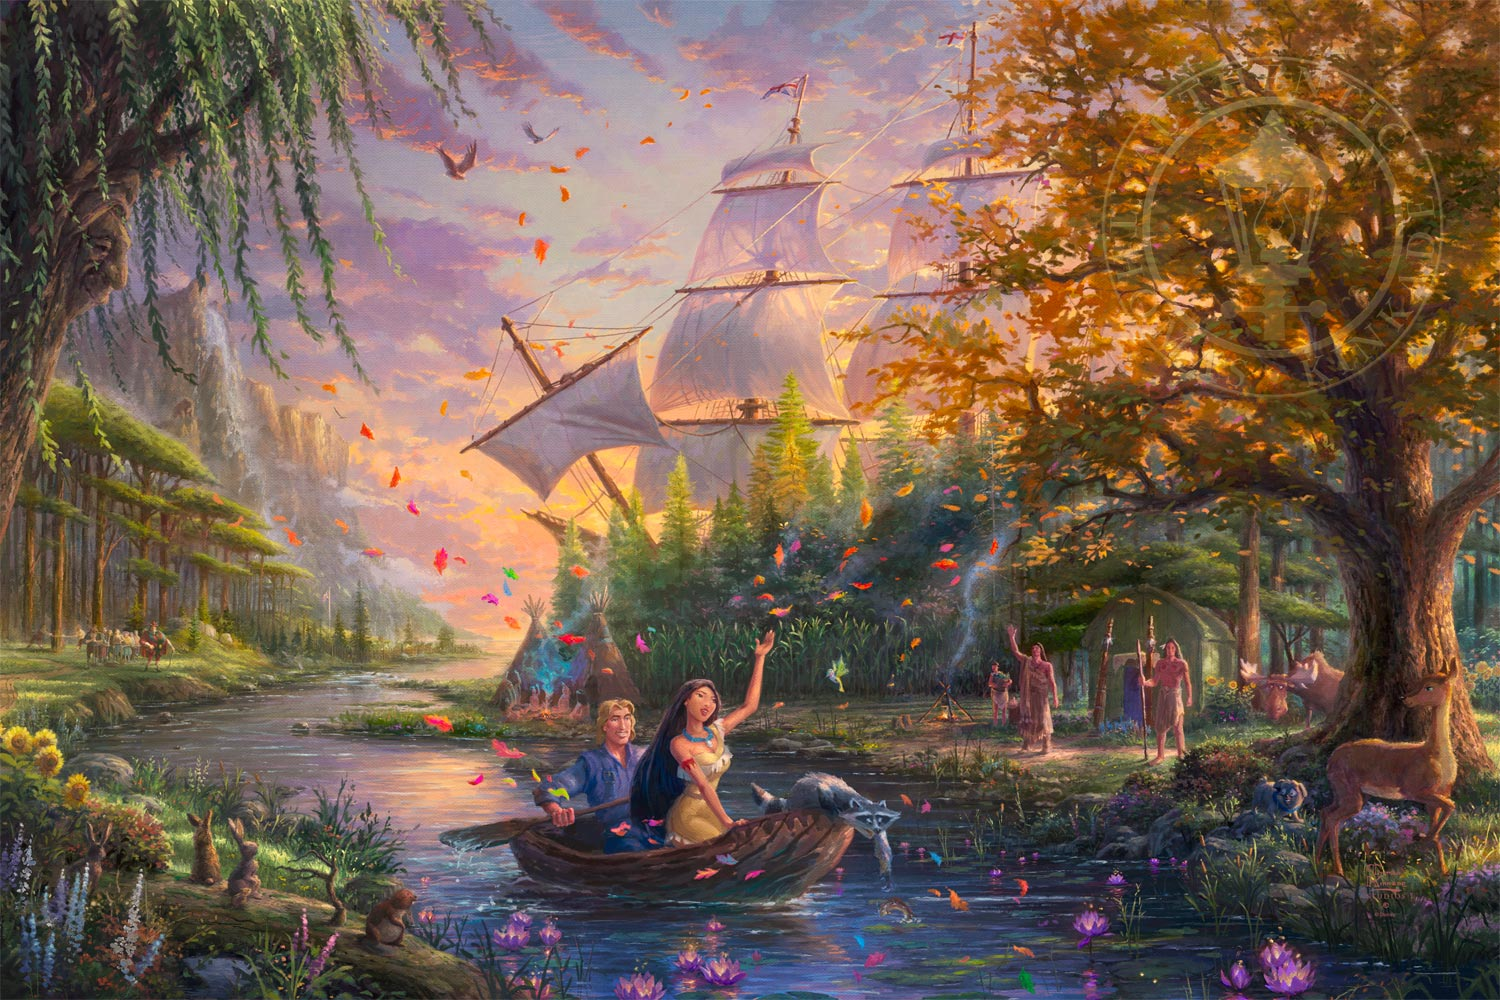 Pocahontas Limited Edition Art Thomas Kinkade